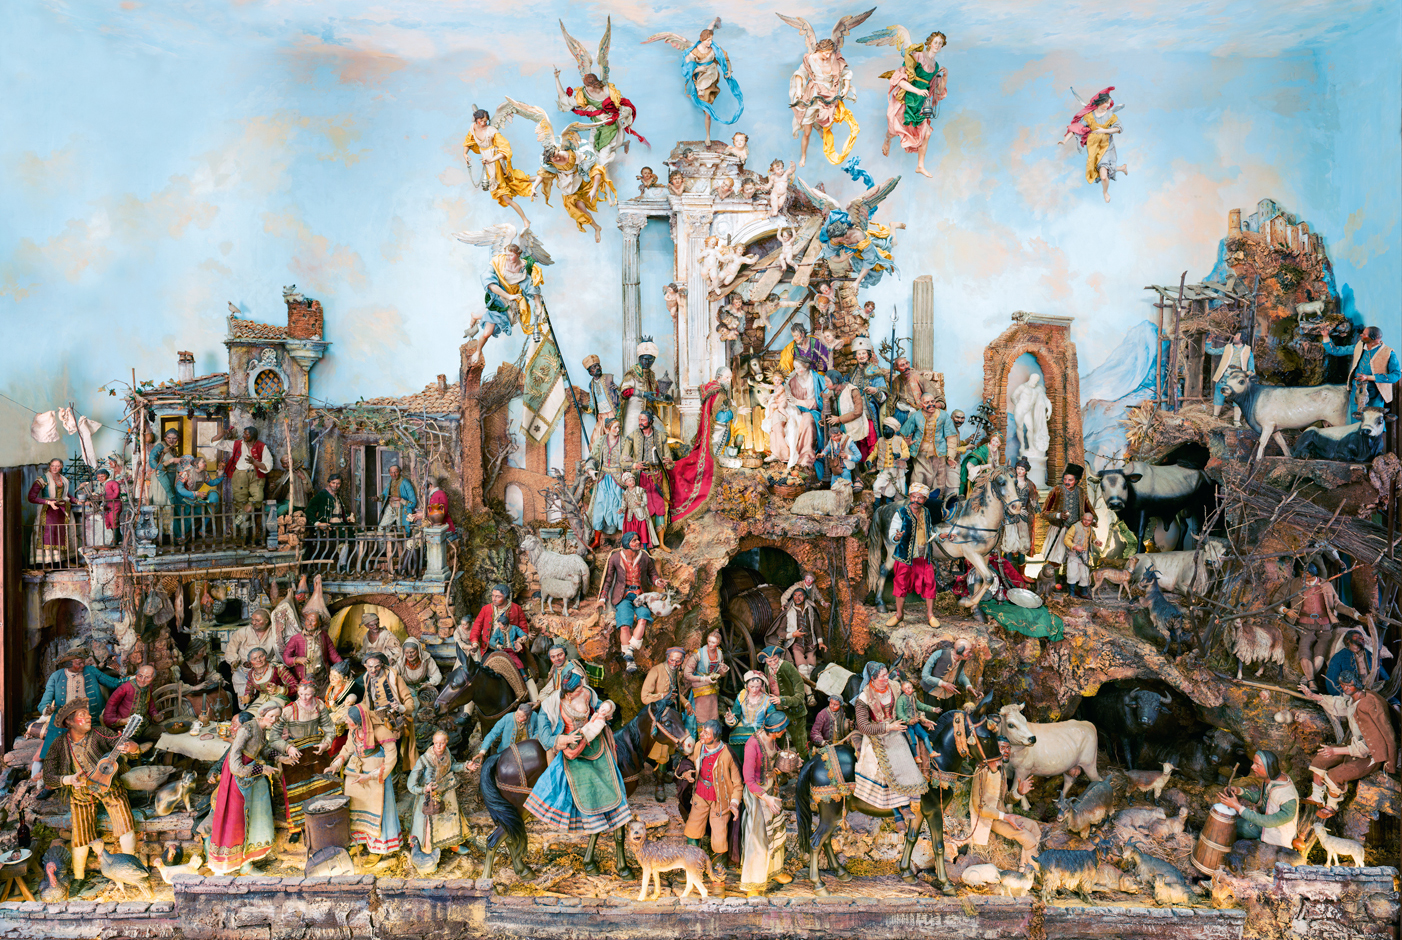 The Chicago Art Institute's Neapolitan crèche ensemble, as currently installed, Chicago, 2016;